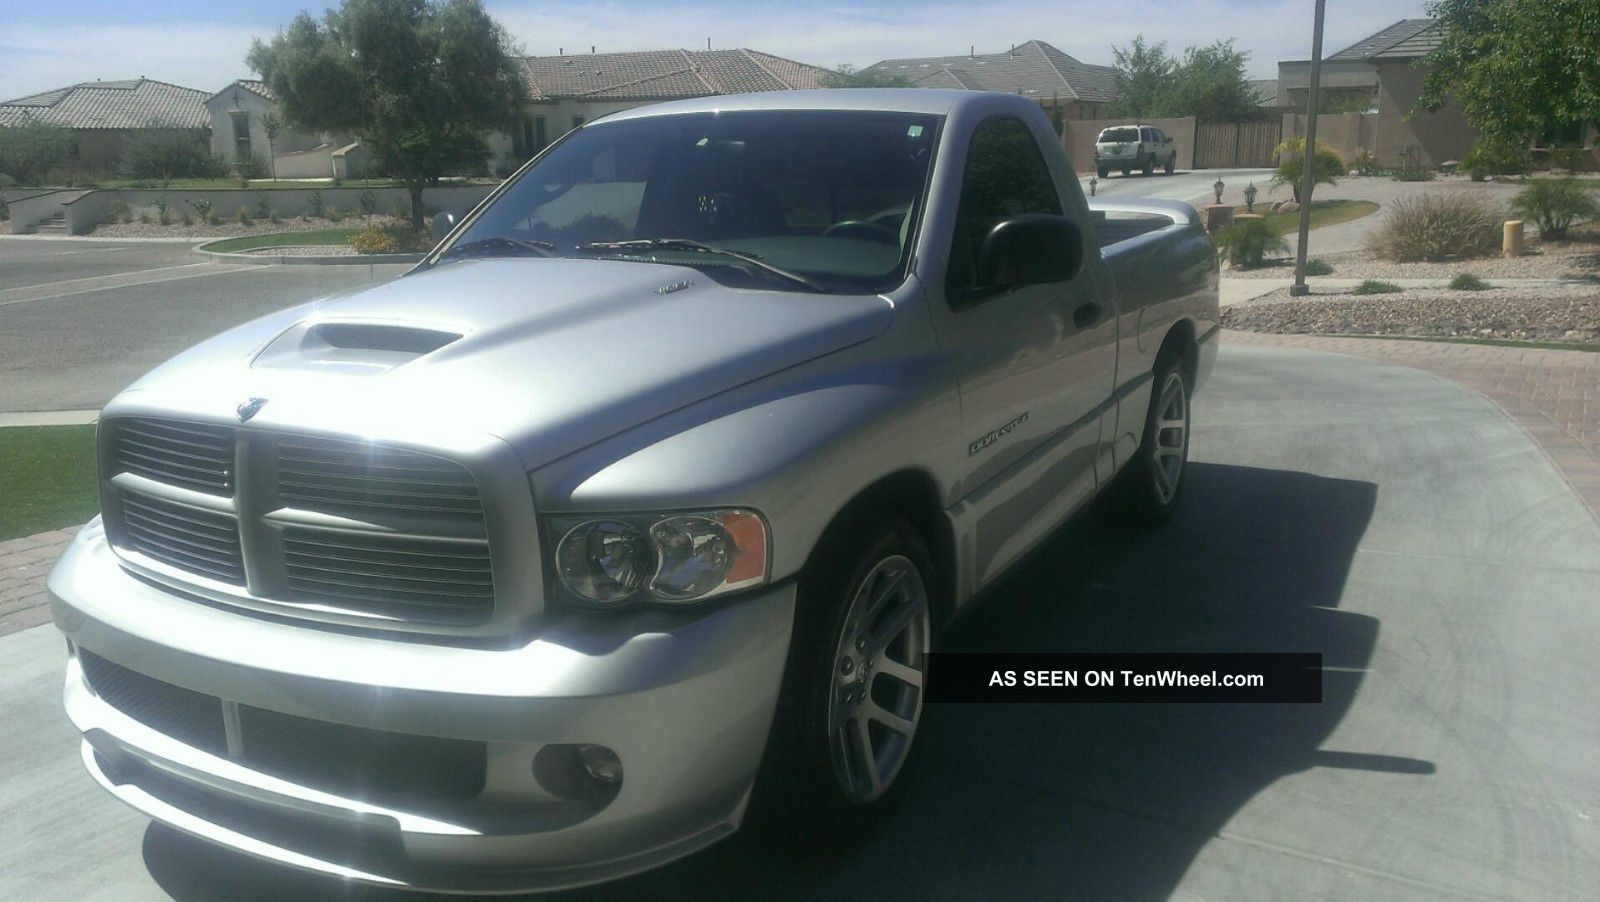 2005 dodge ram 1500 8 3 liter viper v10 engine regular cab 510 horsepower. Black Bedroom Furniture Sets. Home Design Ideas